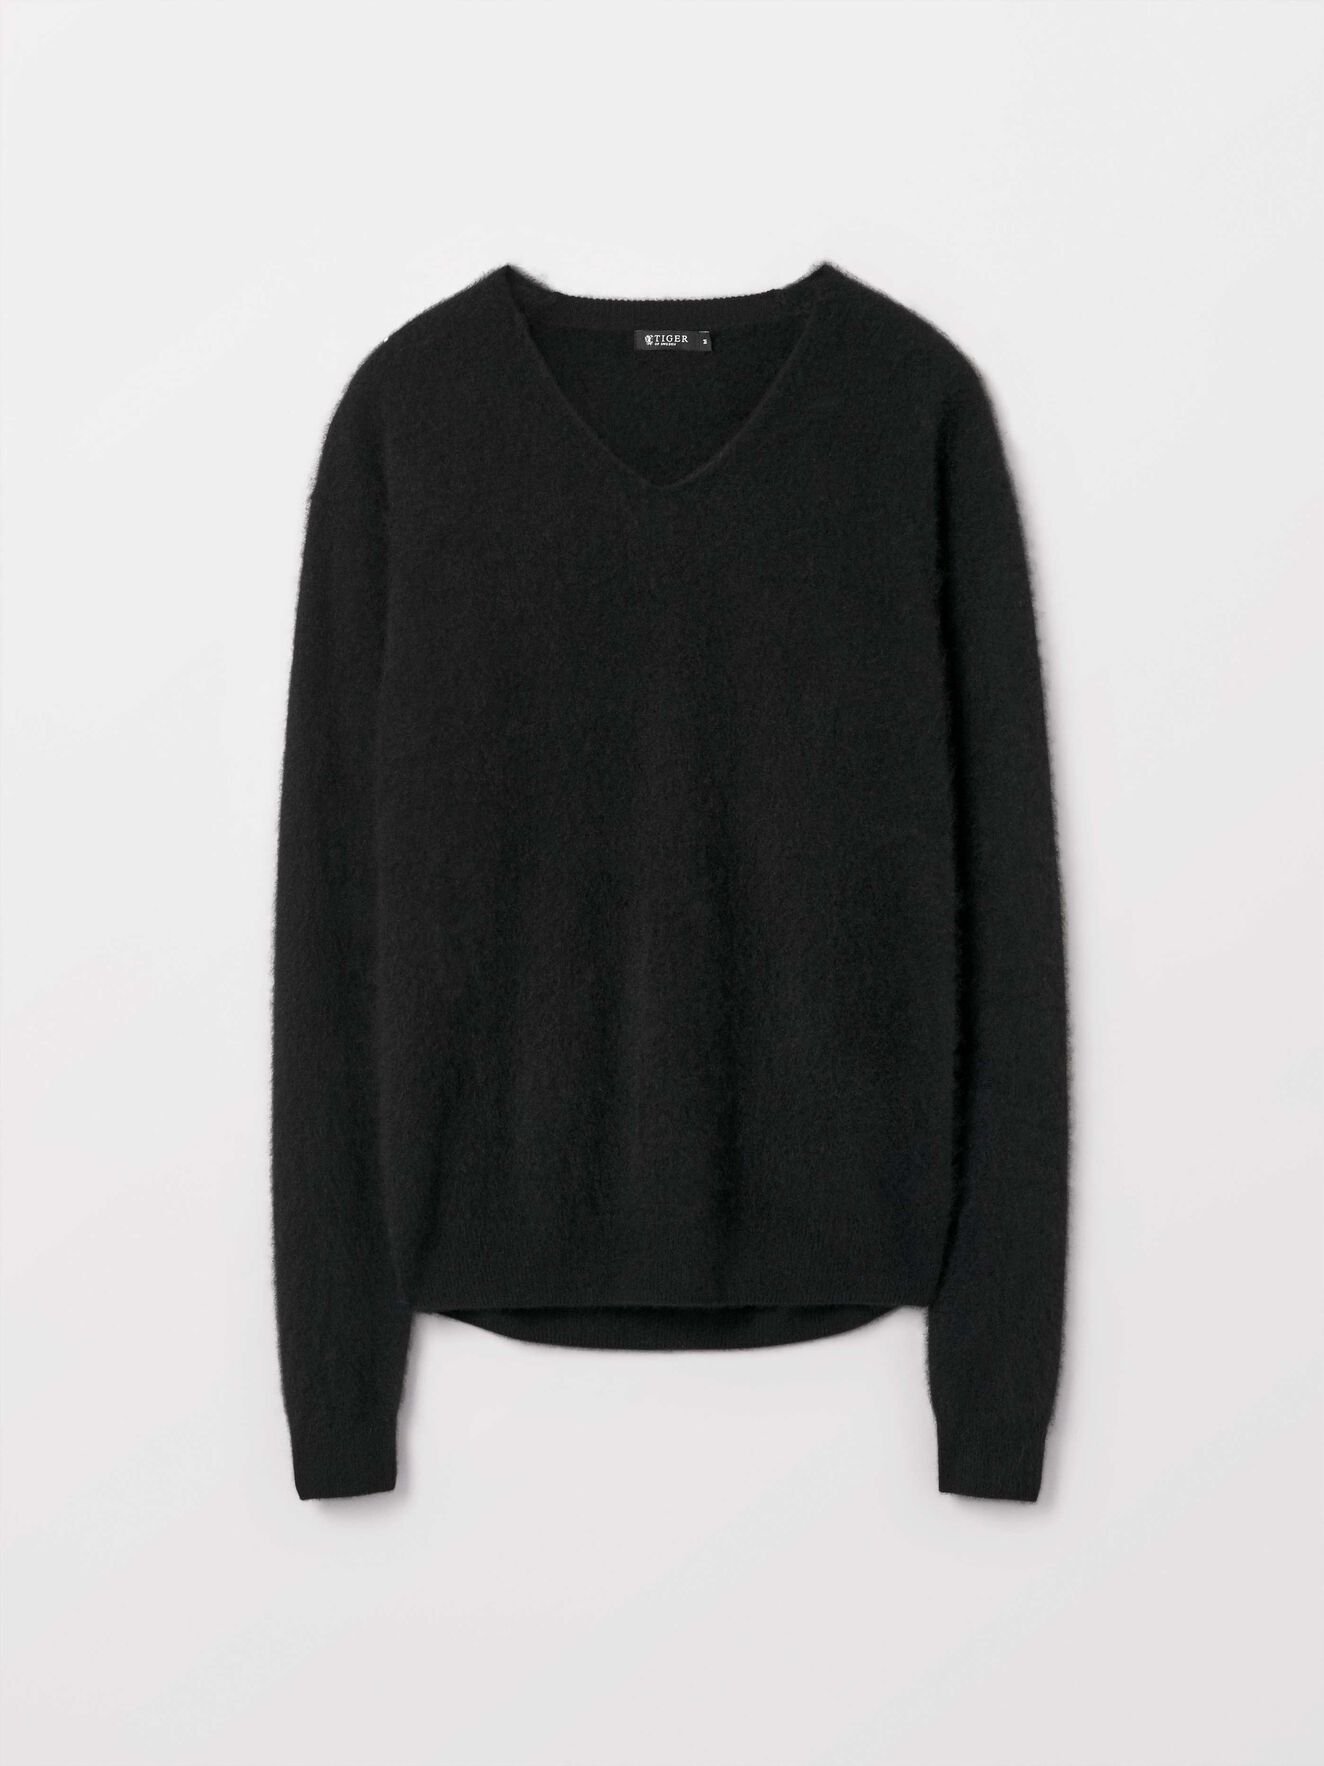 Novelli Pullover in Black from Tiger of Sweden